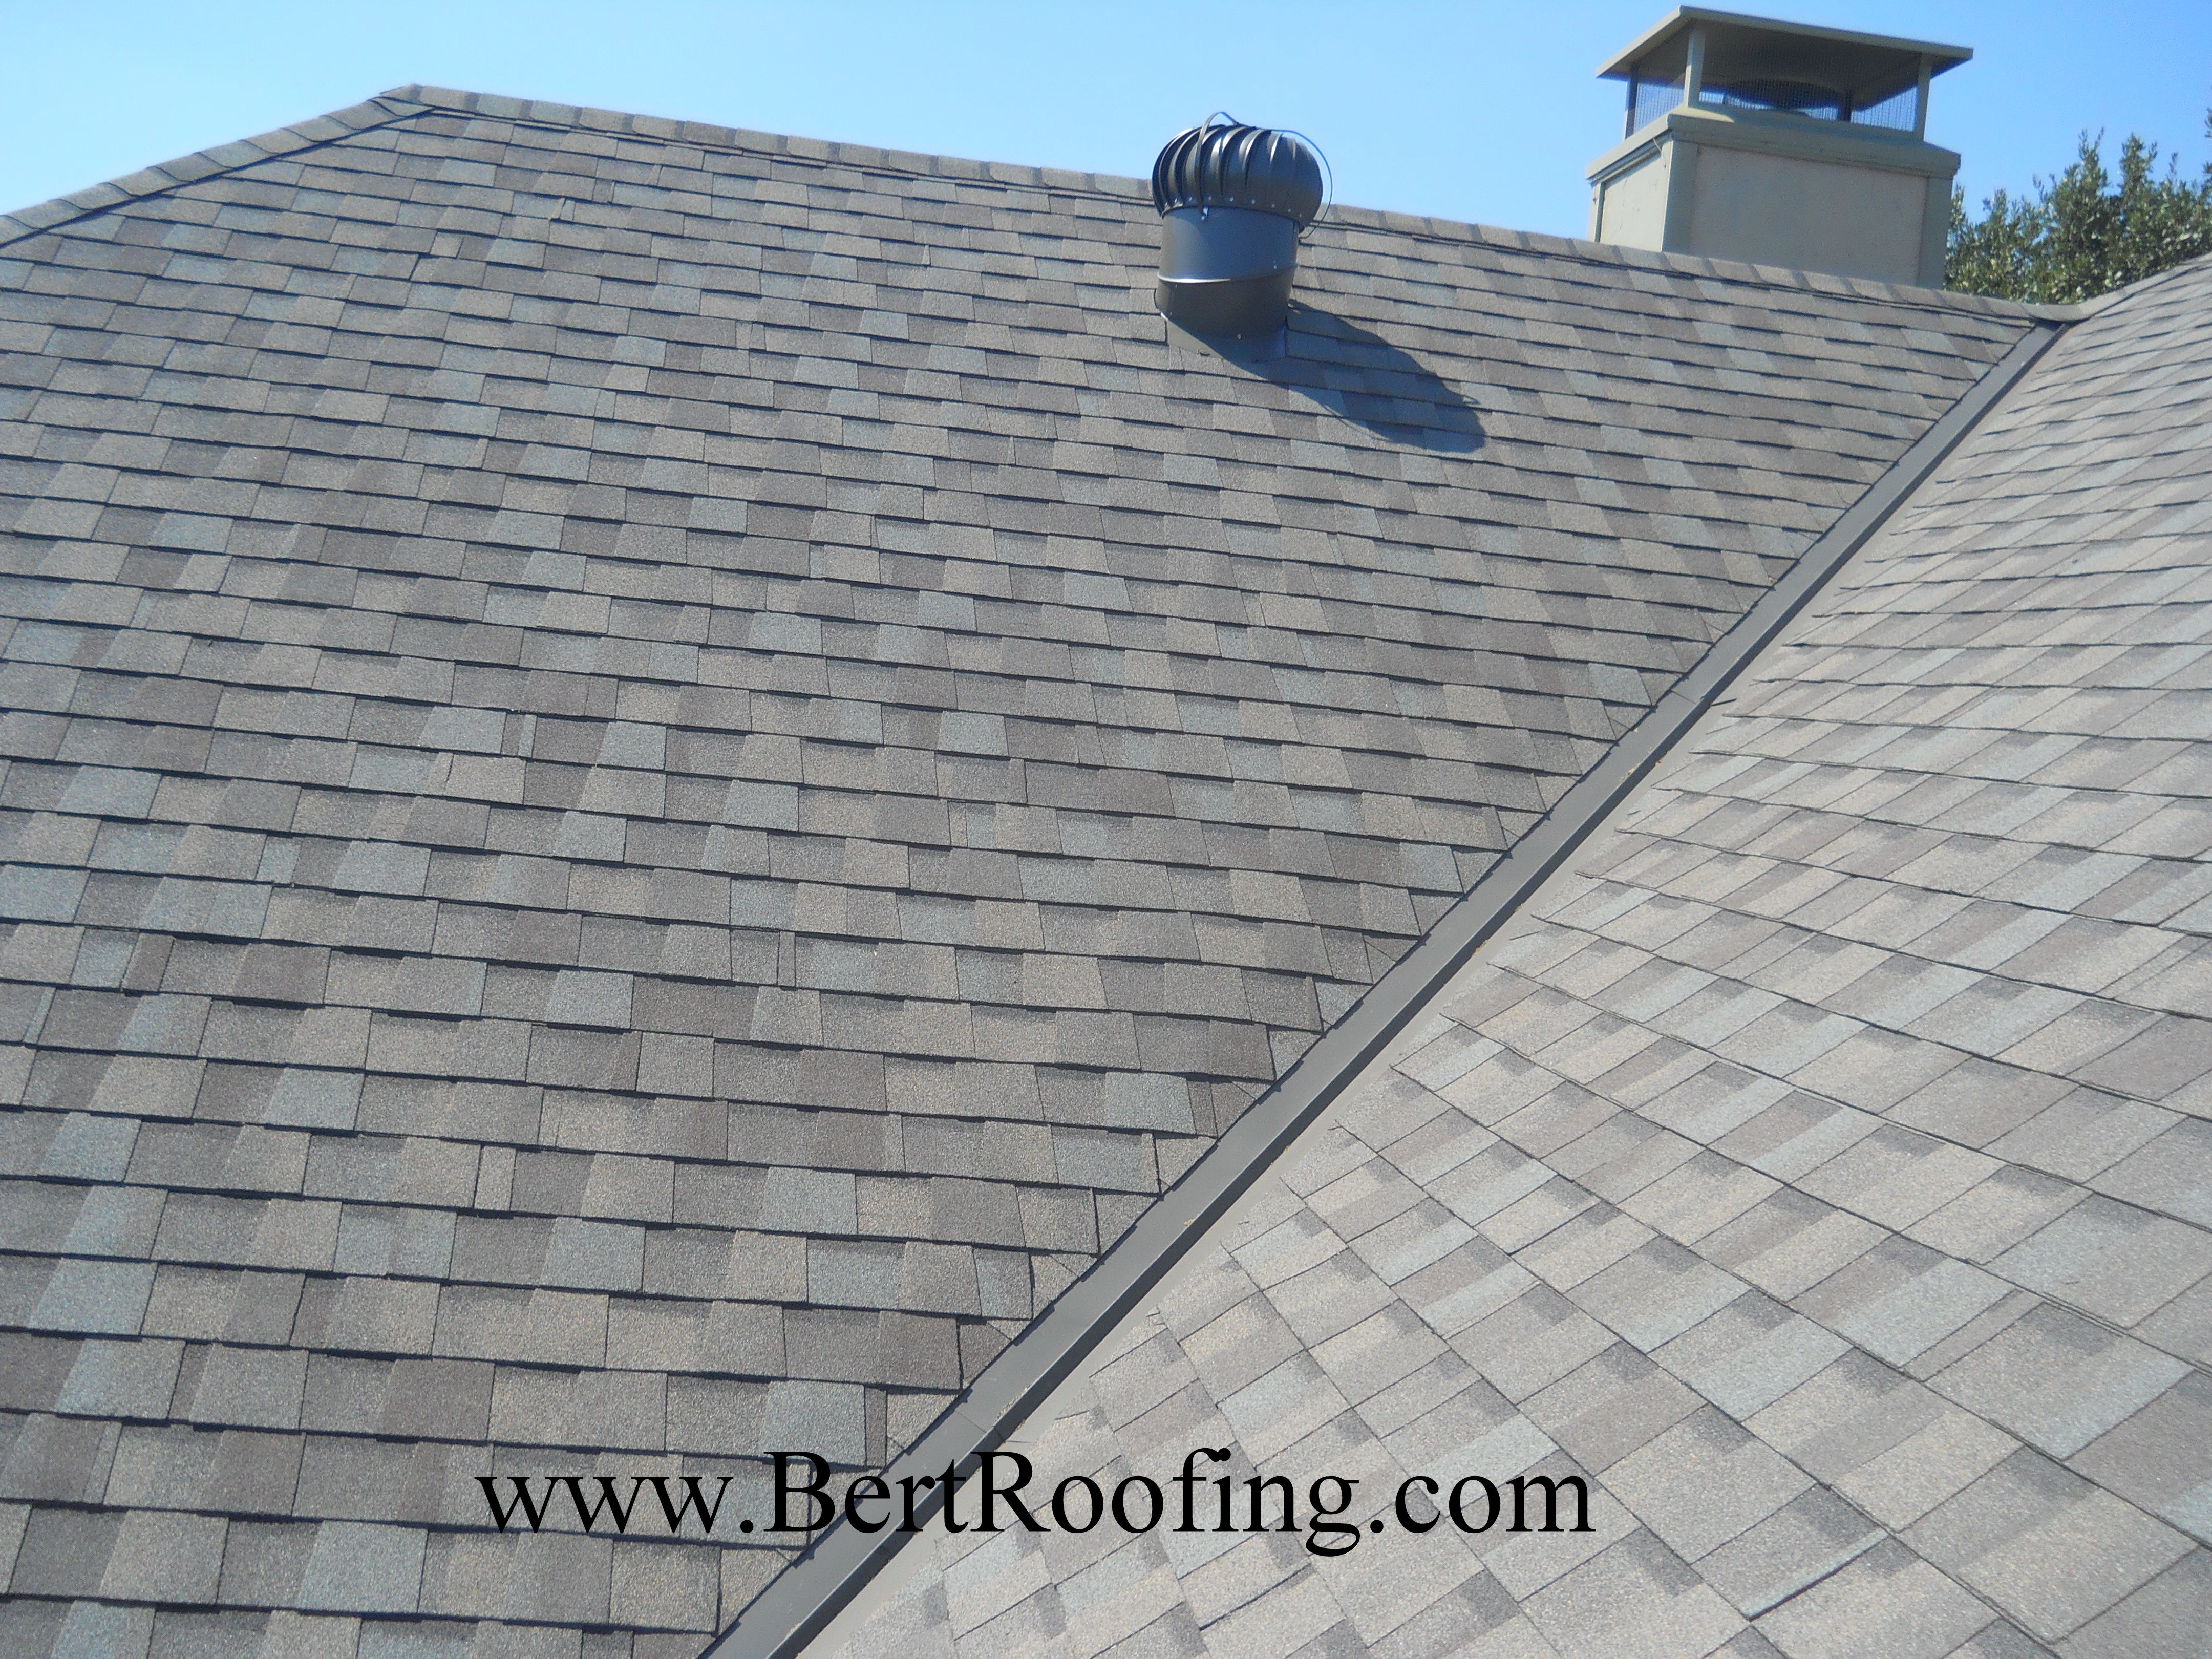 Dallas Roofing Company Bert Roofing Dallas Roofing Contractor Roof Repair Composition Roof Roofing Roof Architecture